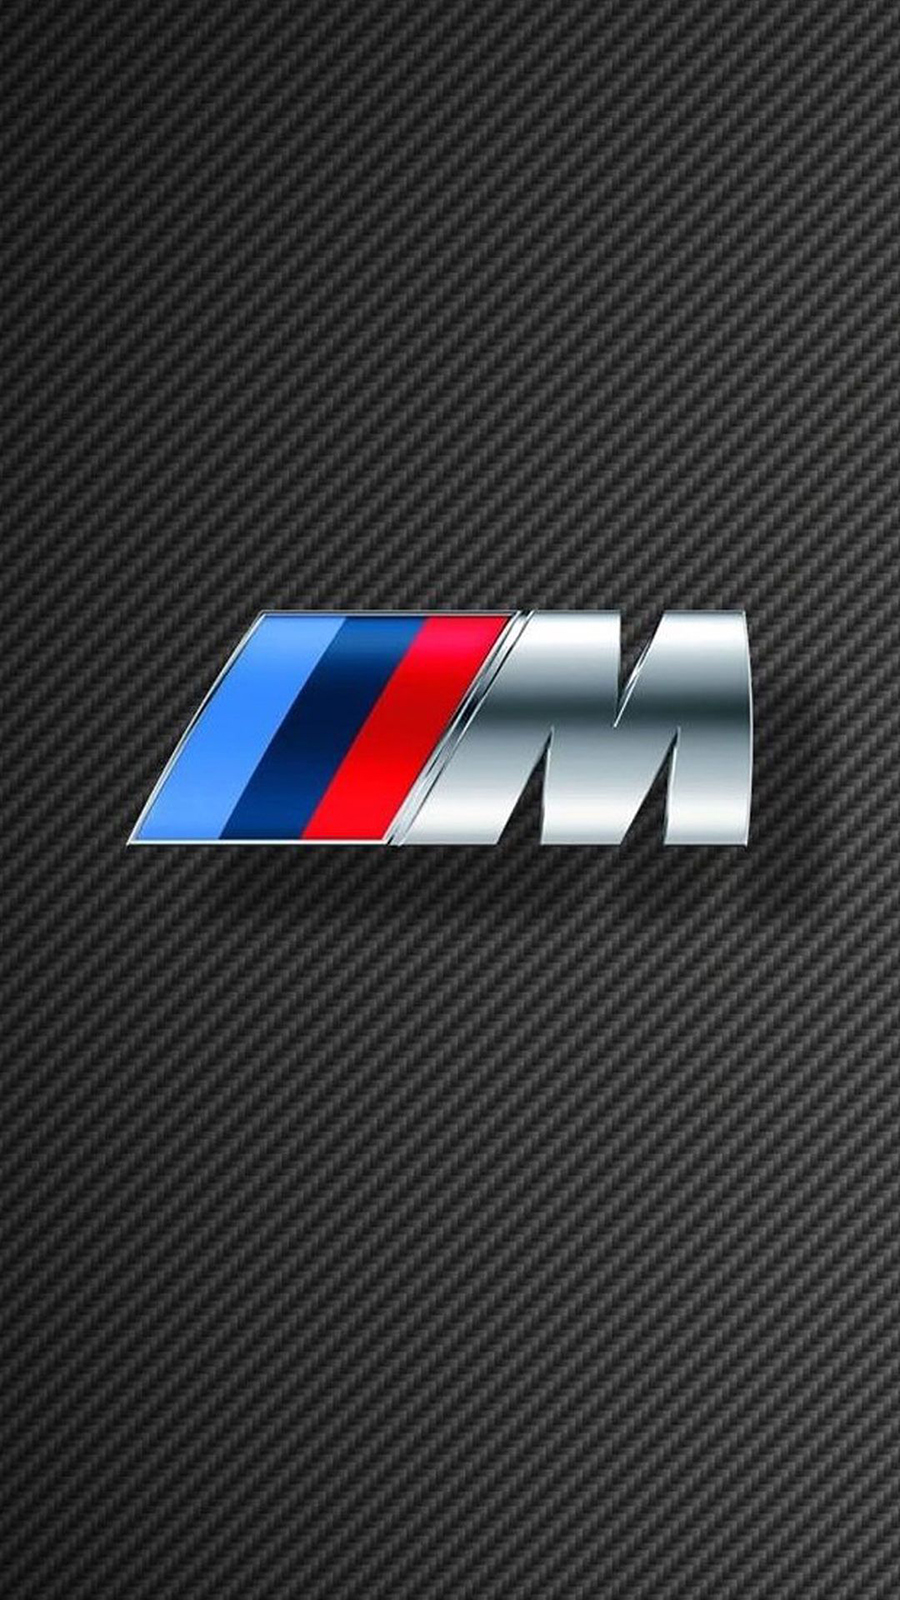 Best Bmw HD wallpapers download – Free Bmw HD Wallpapers (31)